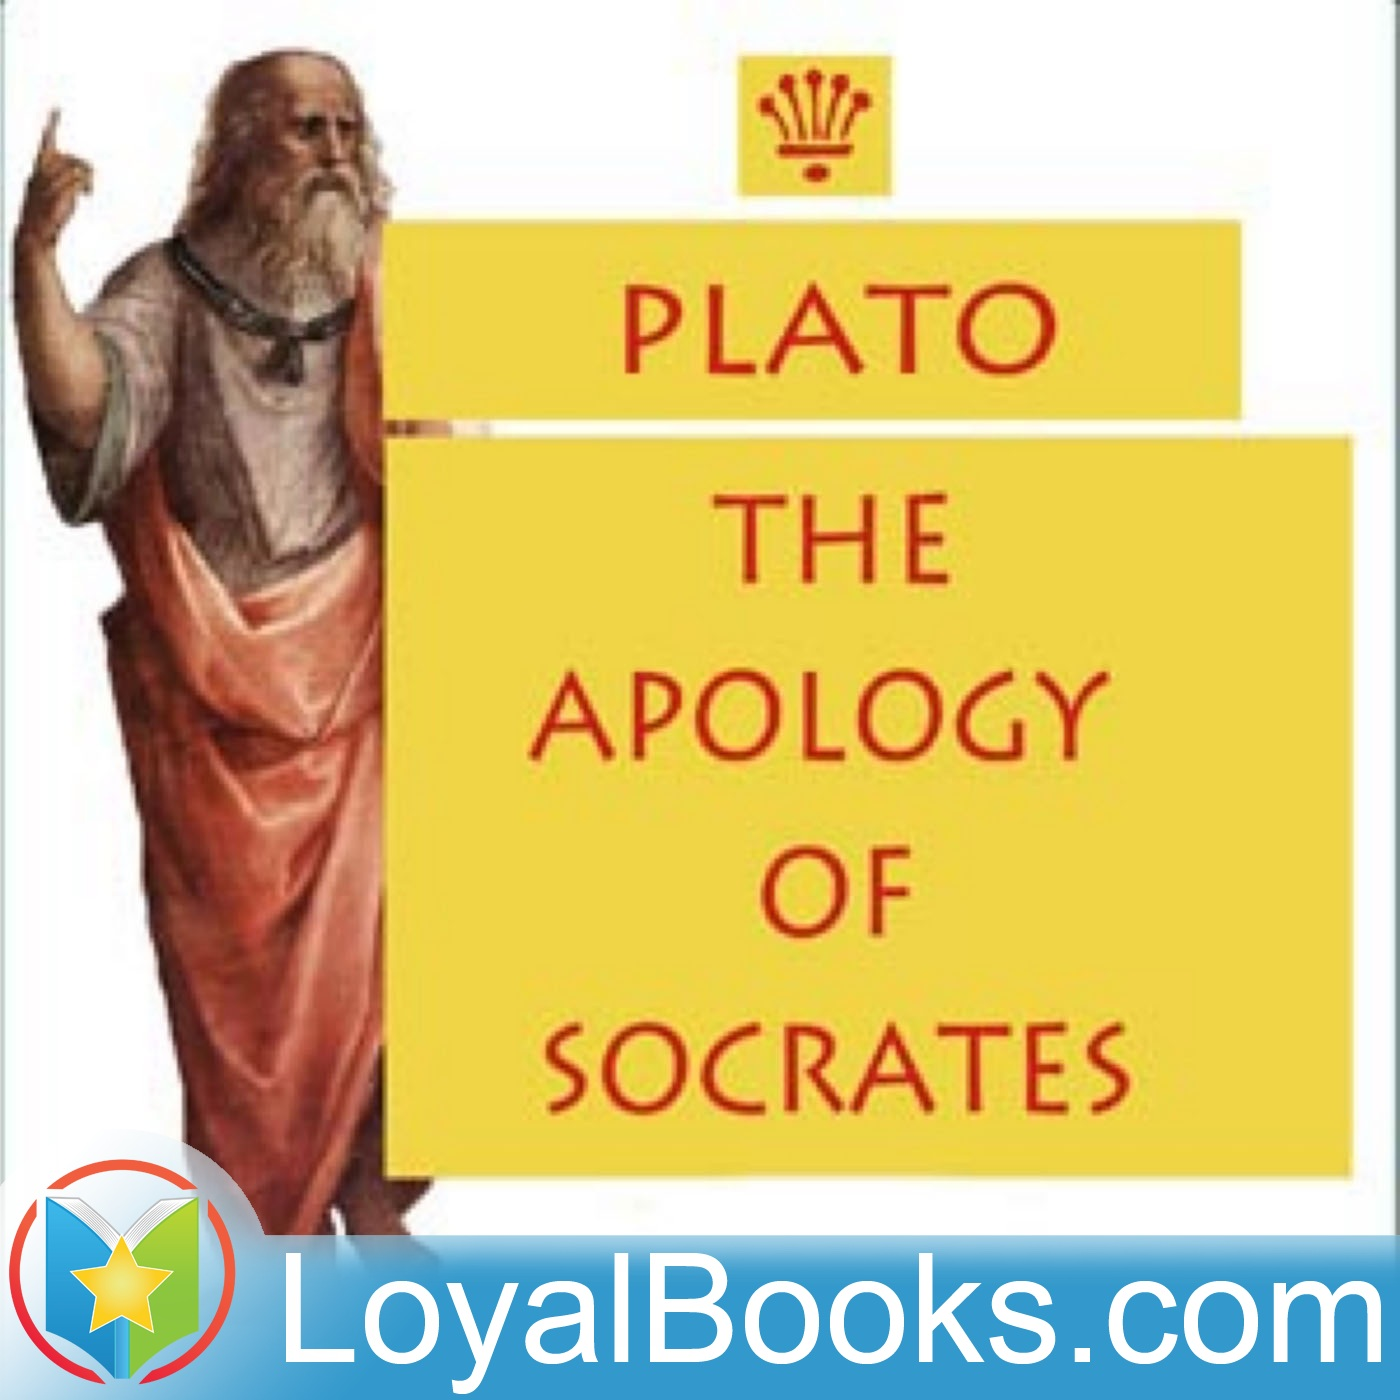 <![CDATA[The Apology of Socrates by Plato]]>